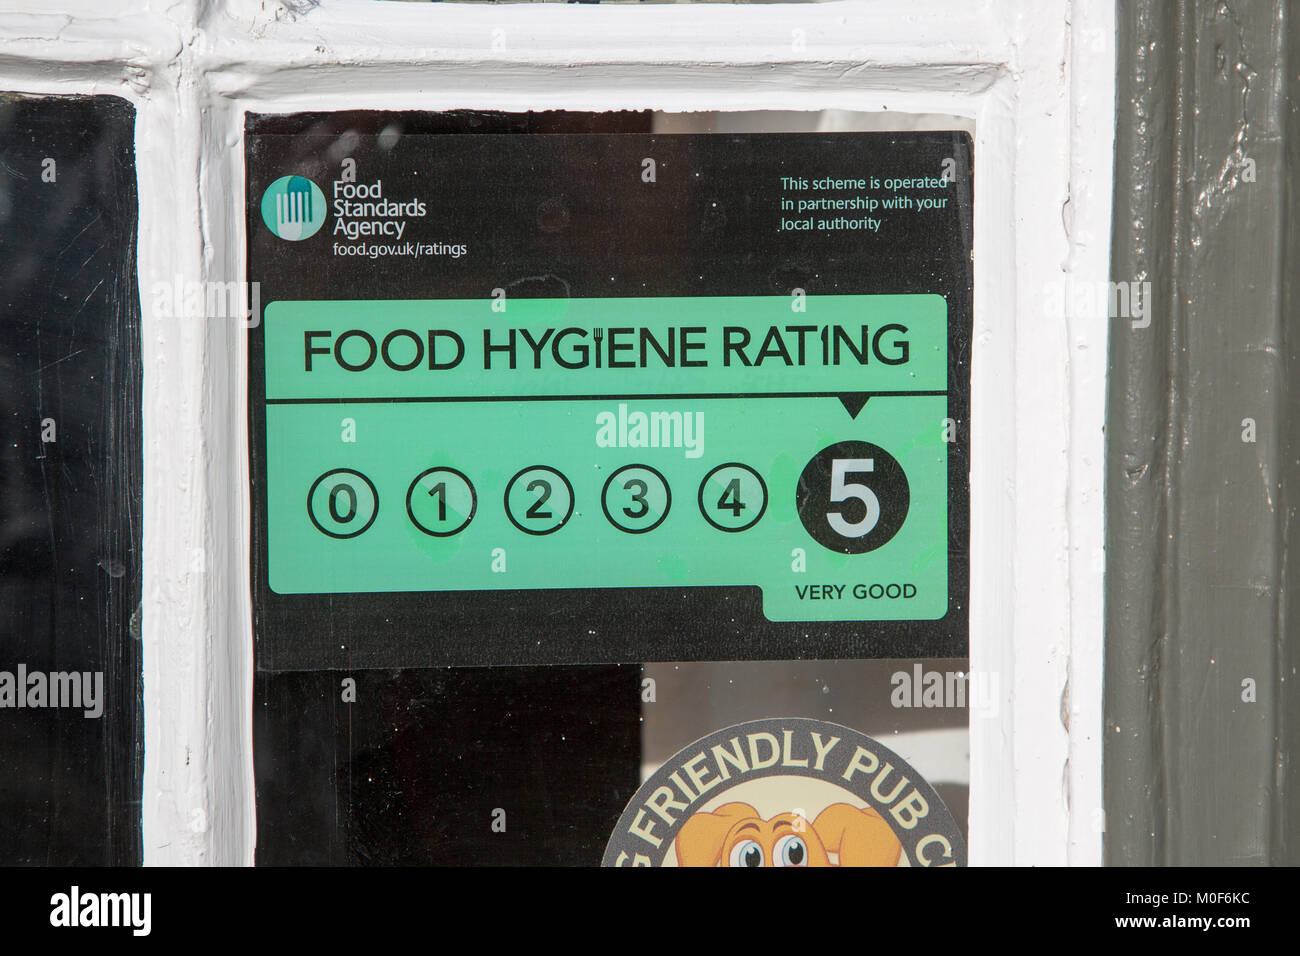 Food Standards Agency Stock Photos & Food Standards Agency Stock ...